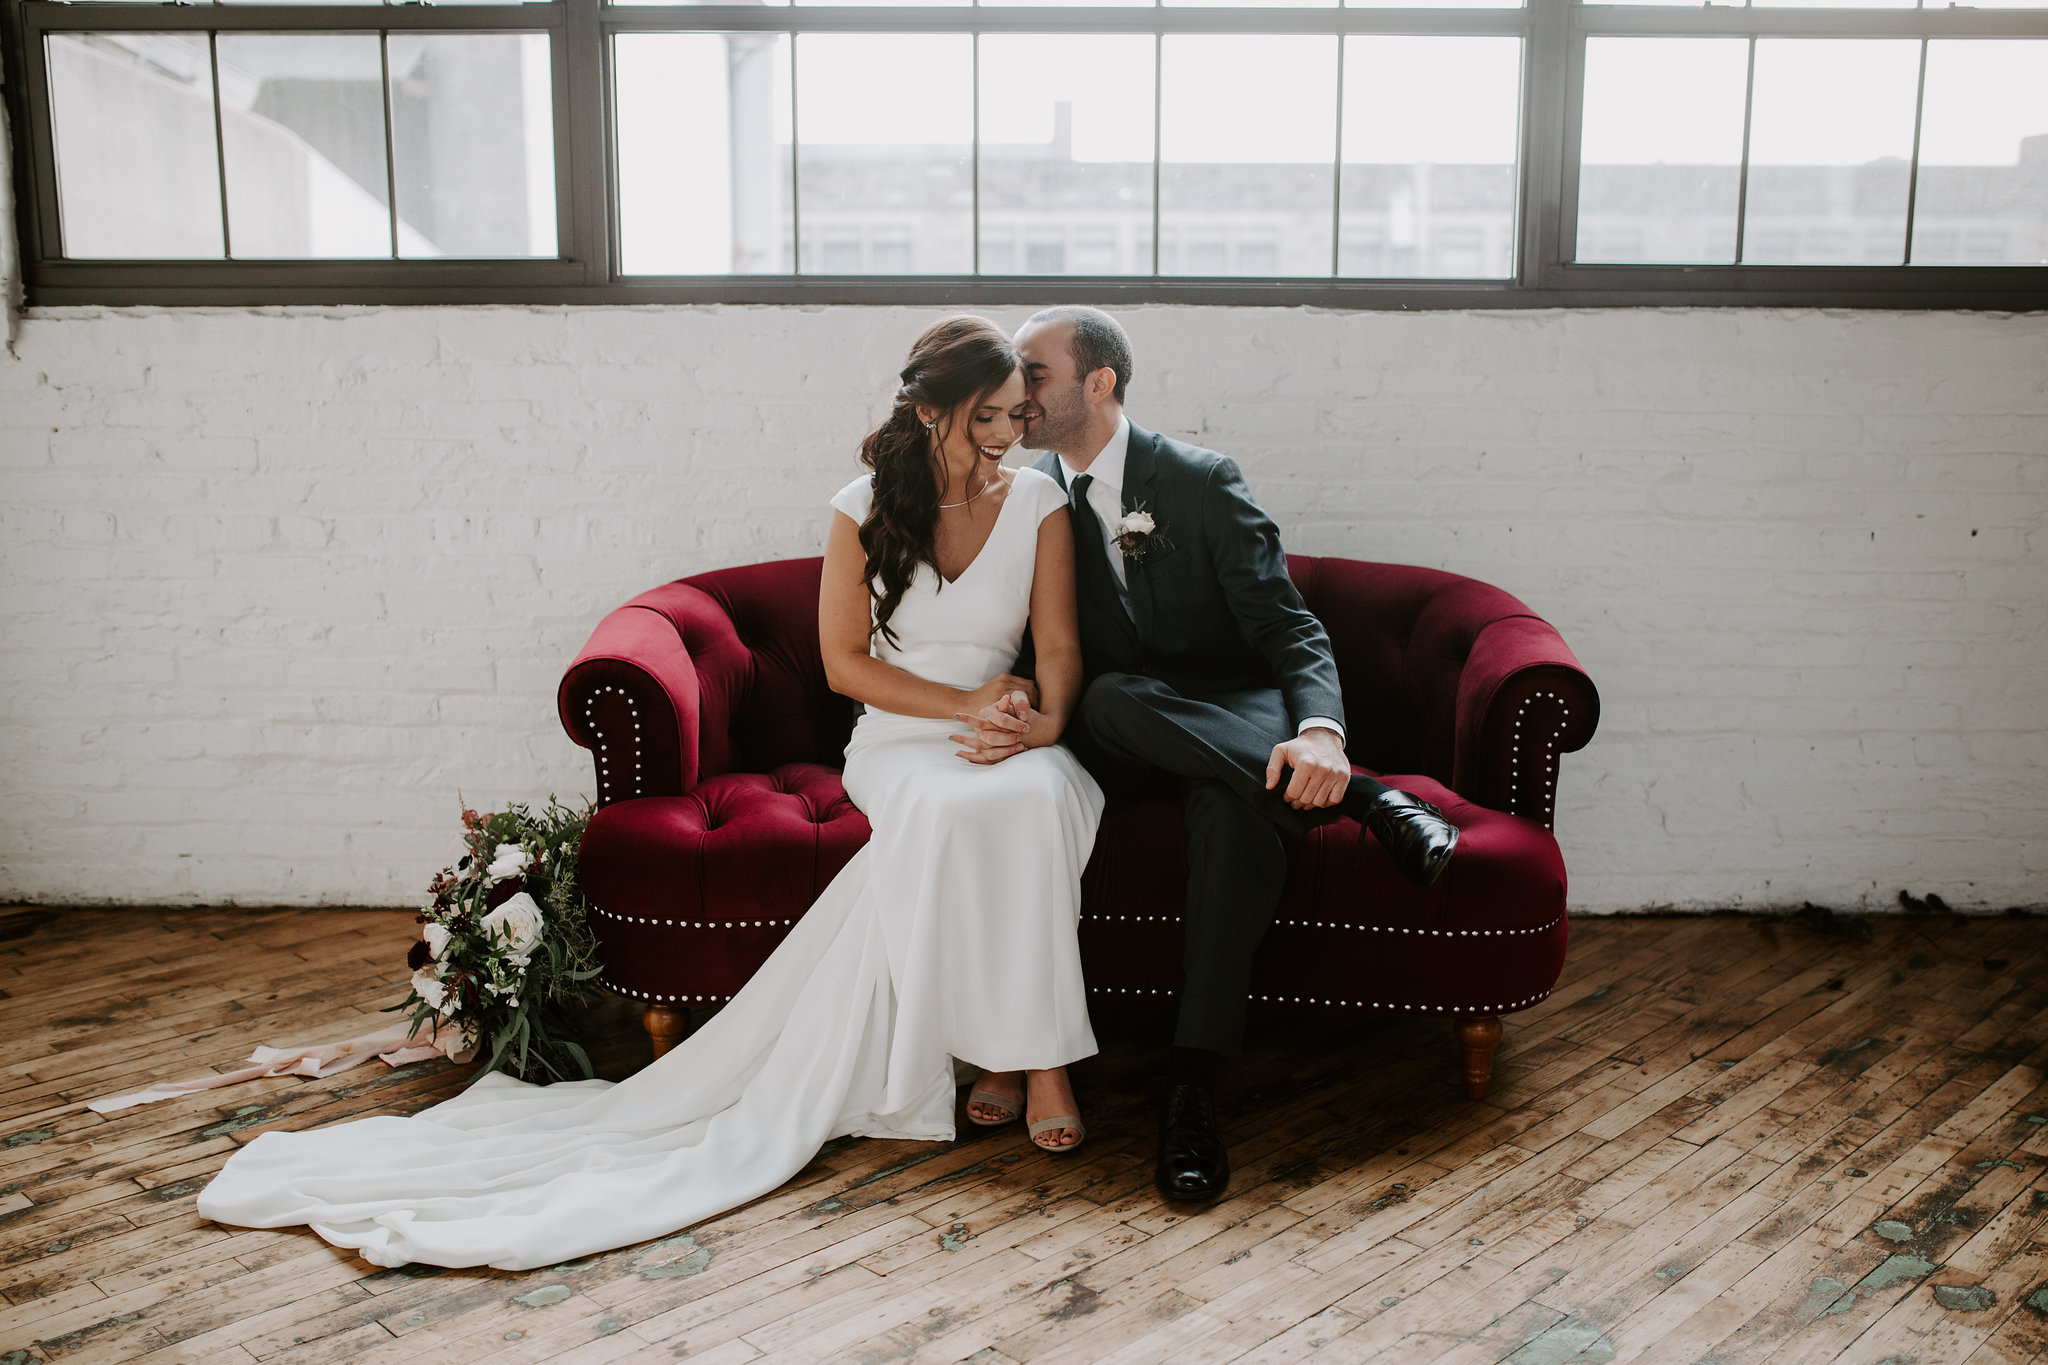 Morgan + Ty on December 2, 2017 ♥ Mikayla Herrick Photography at Accelerator Space (Baltimore, MD)